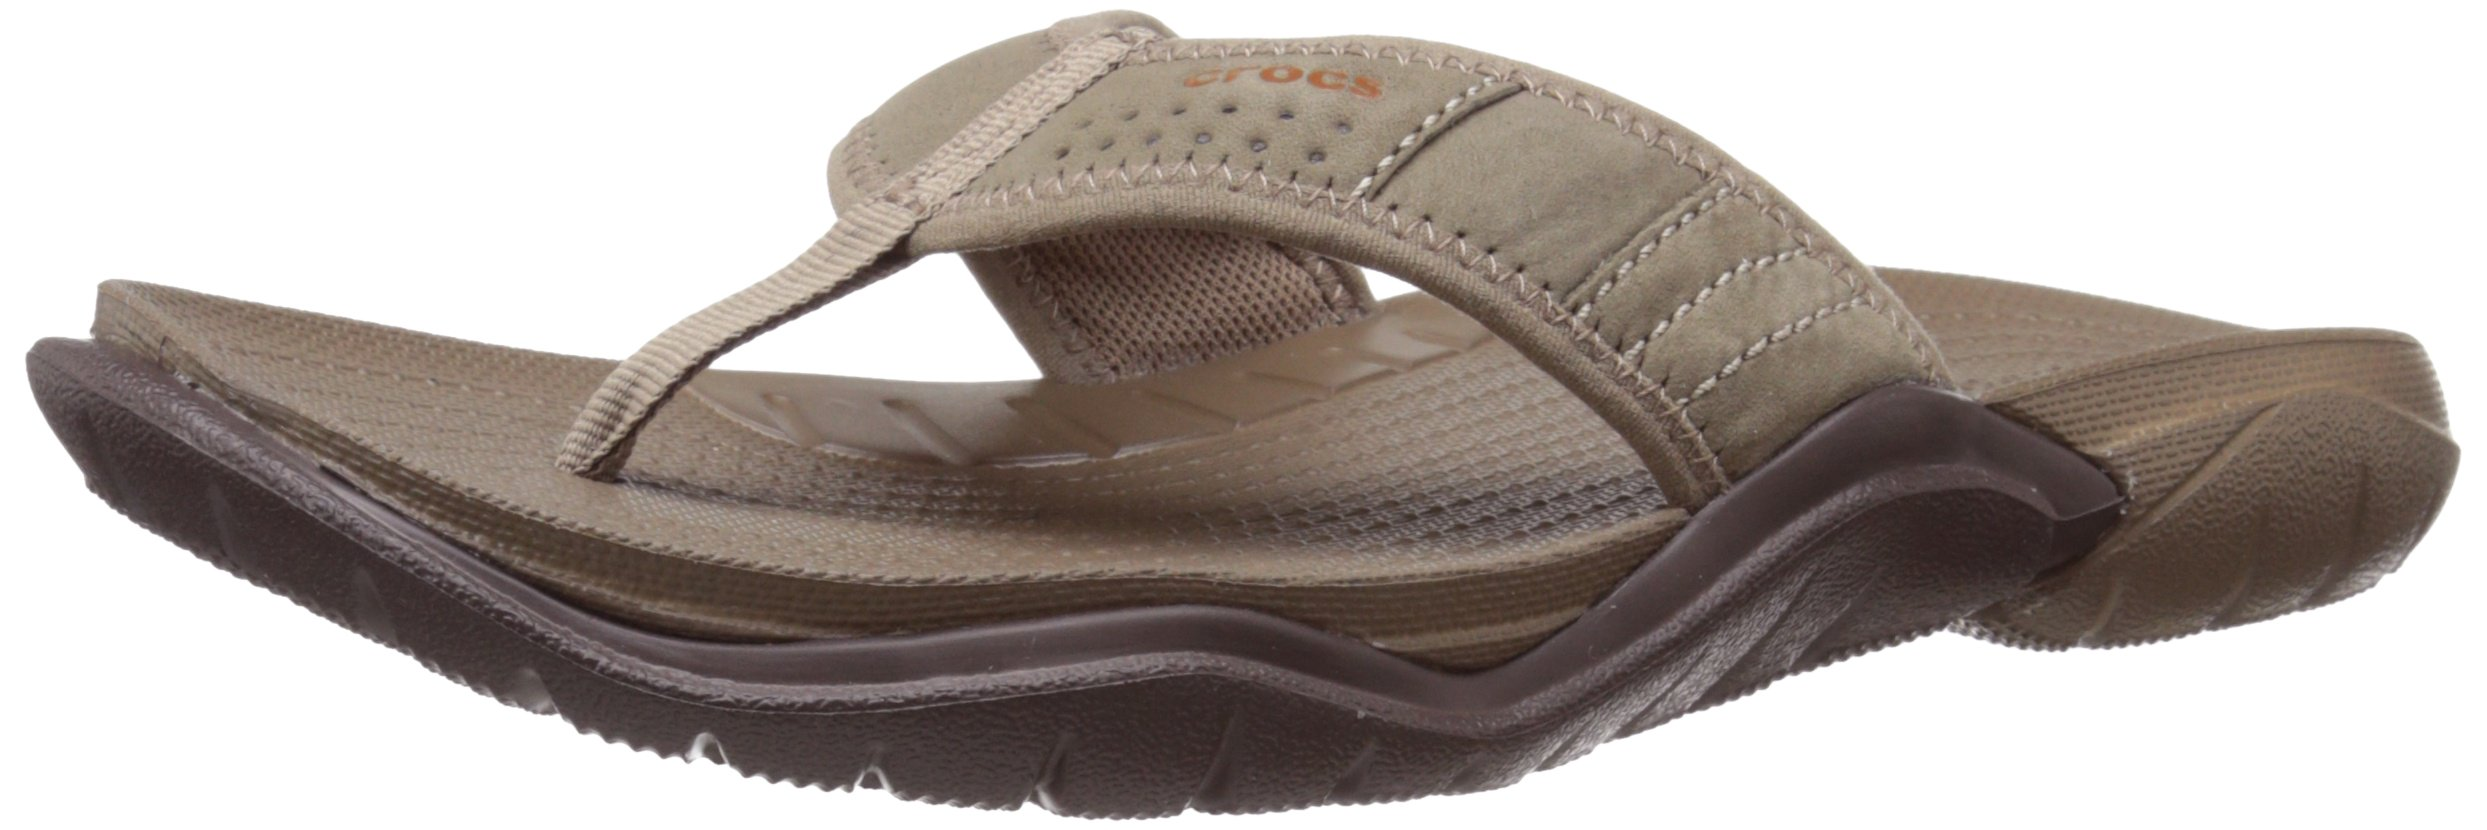 Crocs Men's Swiftwater M Flip Flop, Walnut/Espresso, 12 M US